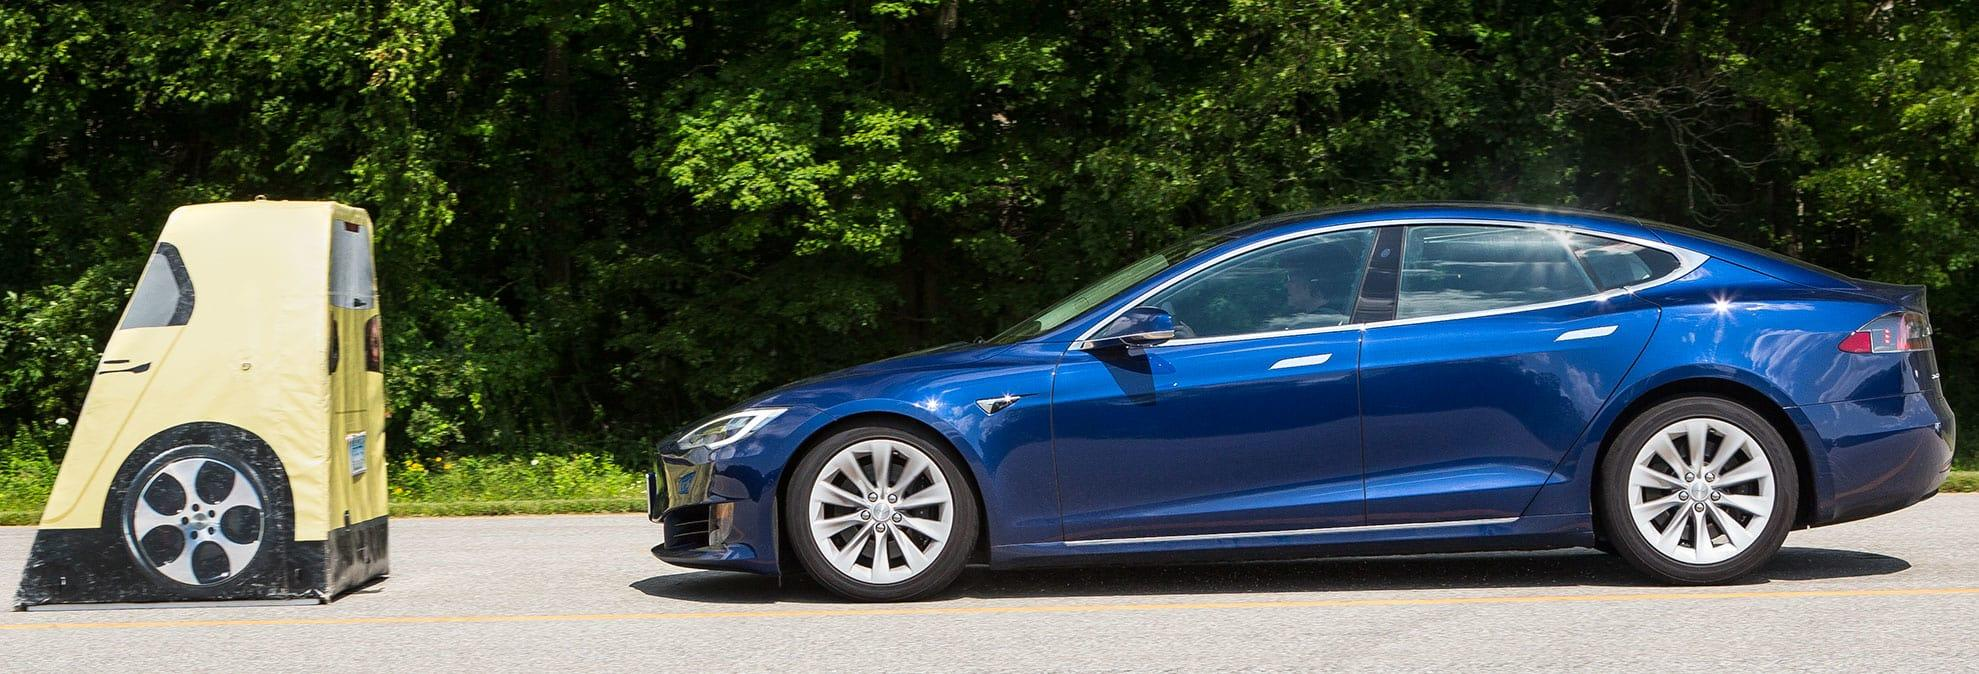 Tesla Model S Tops Consumer Reports Ratings After Getting